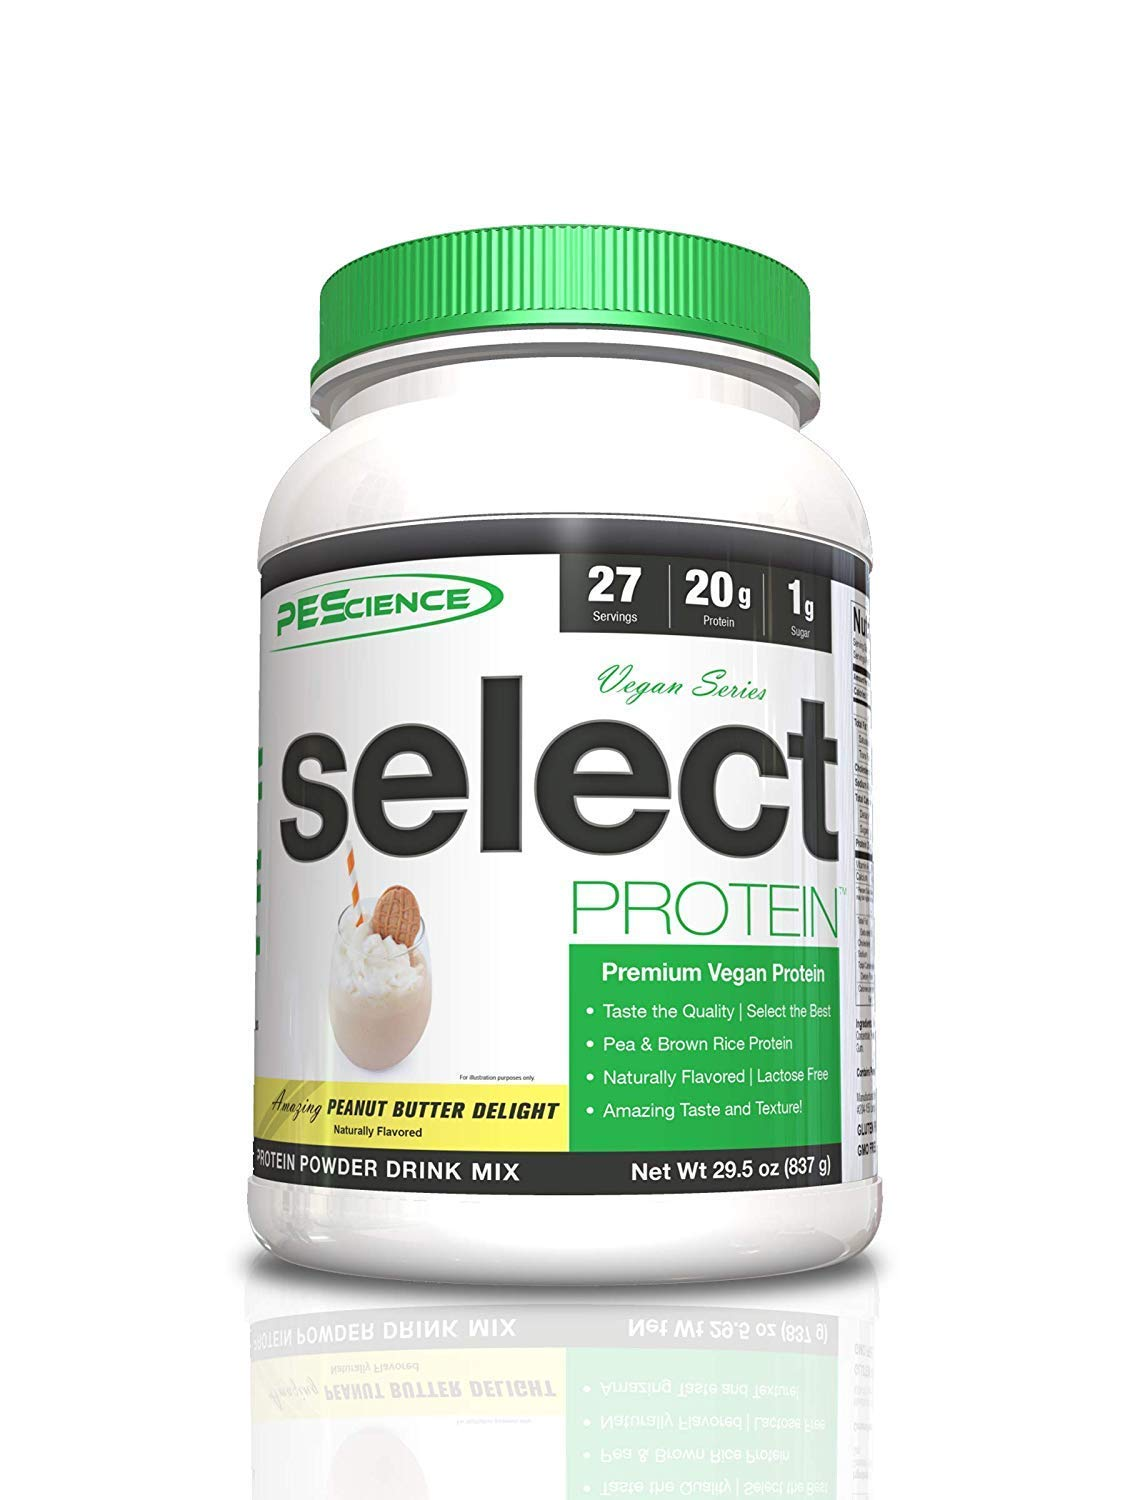 PEScience Select Vegan Plant Based Protein Powder, Peanut Butter, 27 Serving, Pea and Brown Rice Blend